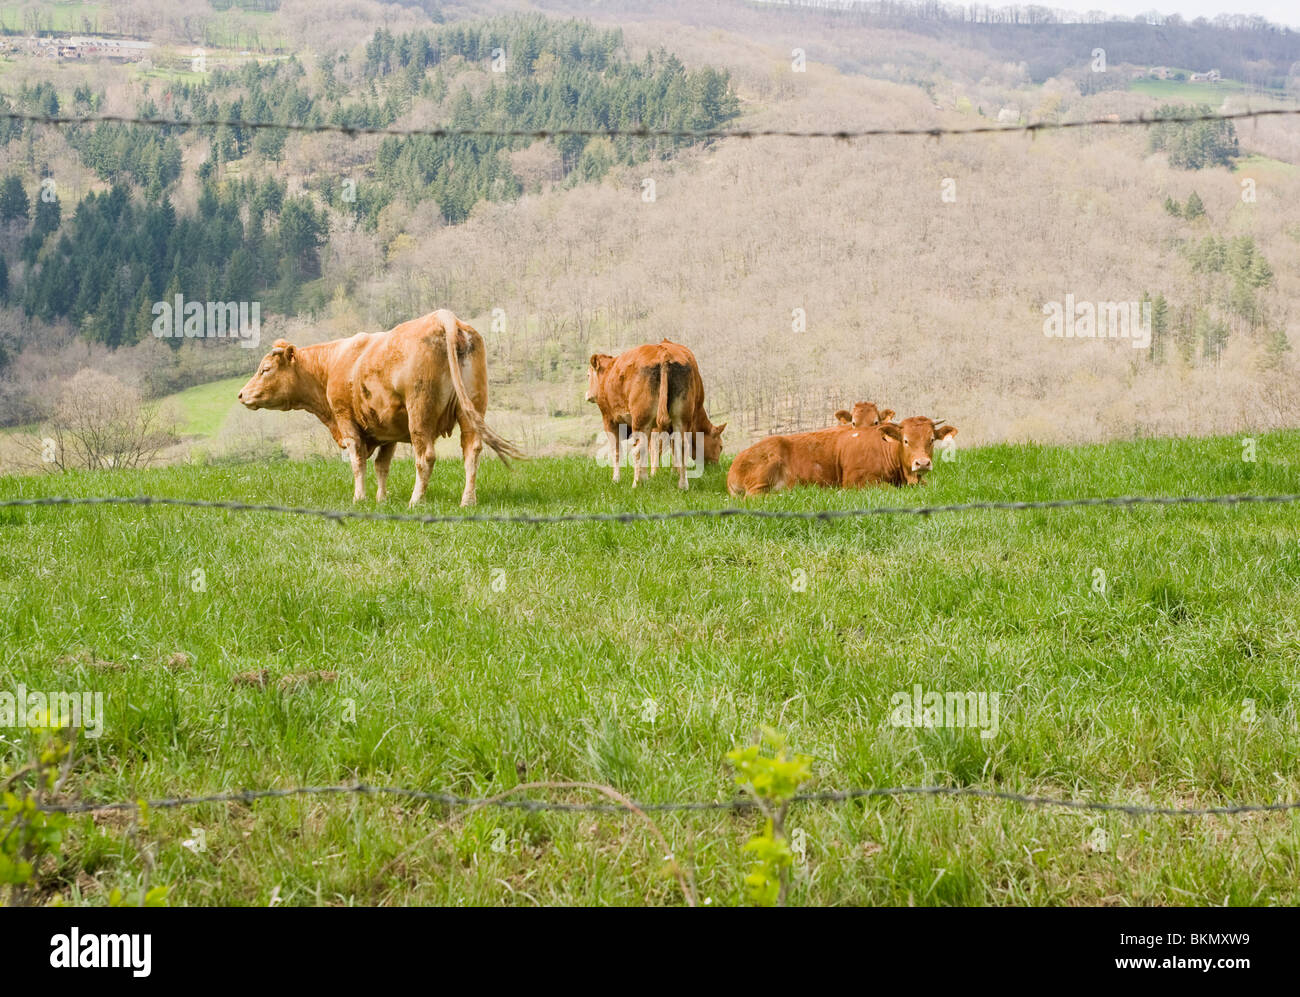 Dairy Cows Grazing and Sitting in a Field In Najac Aveyron Midi-Pyrenees France - Stock Photo